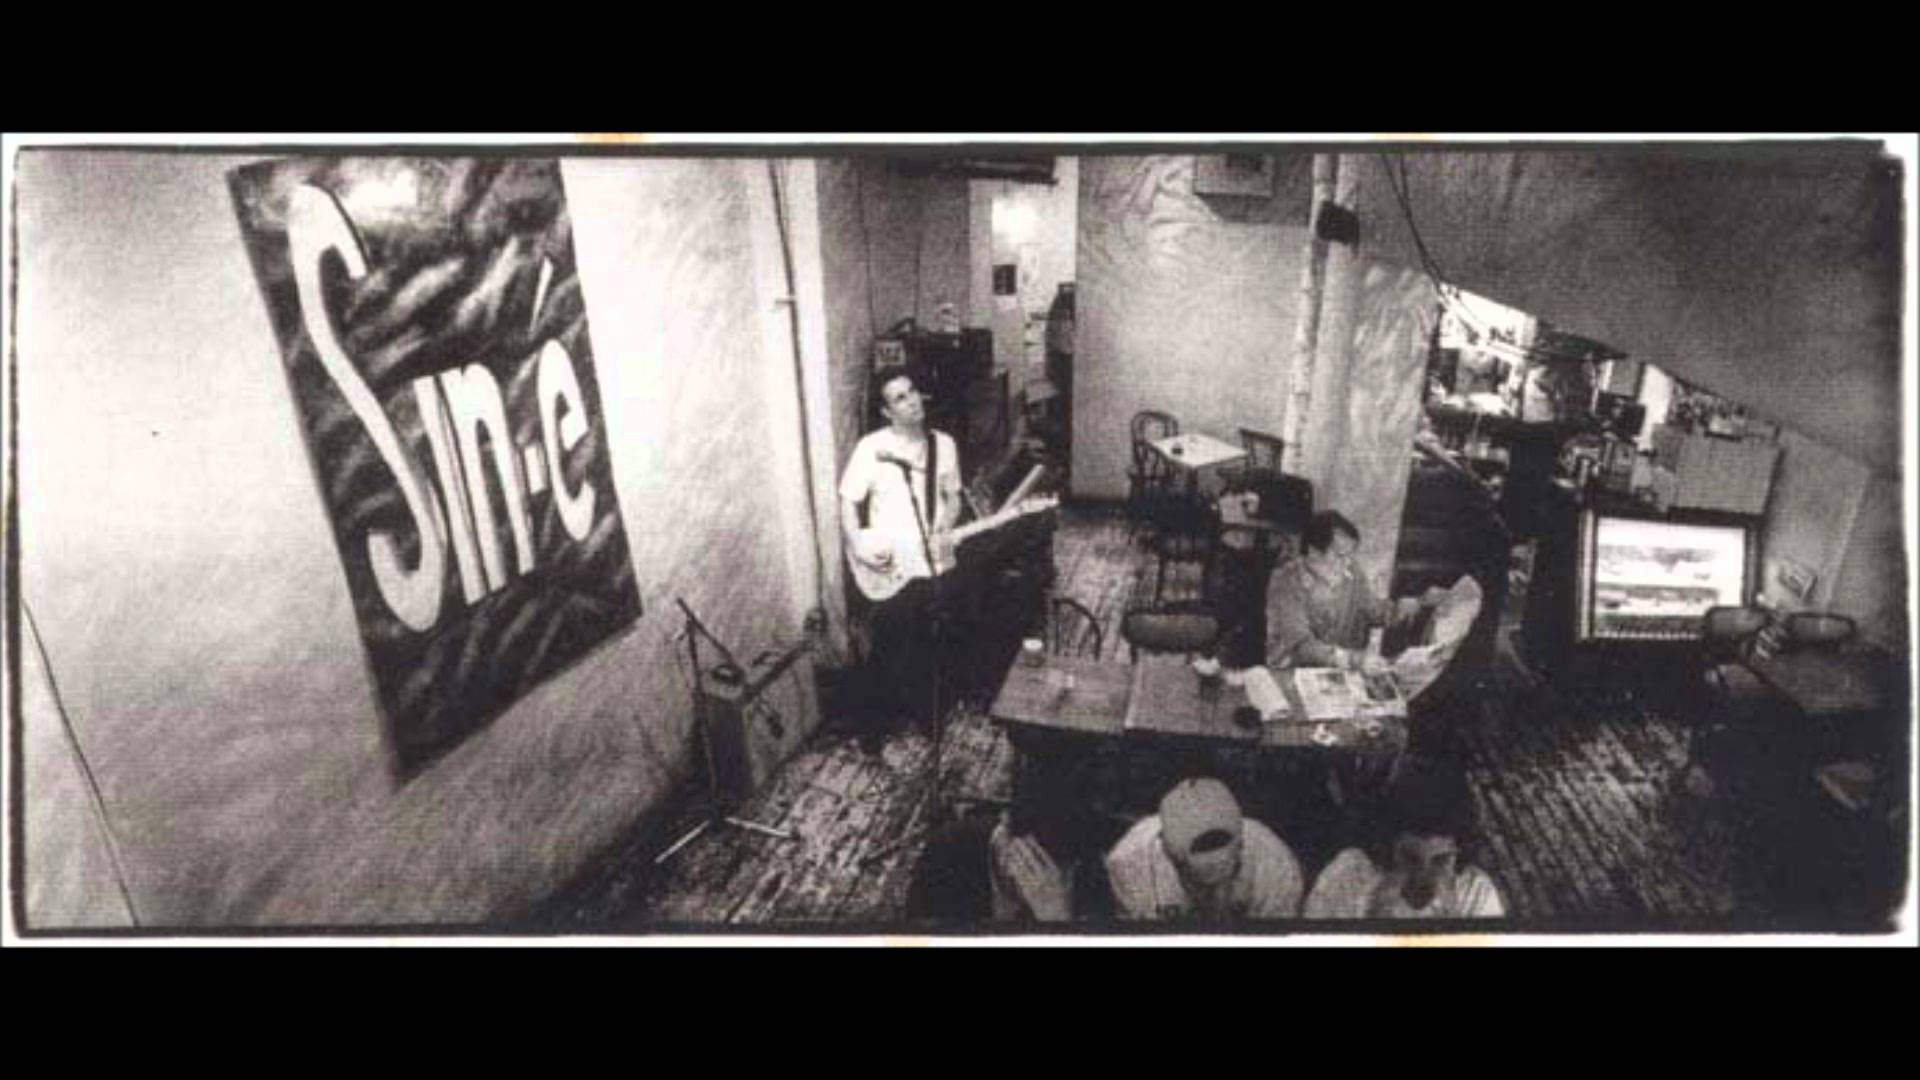 live sin e Five Great Albums Recorded In Coffee Houses